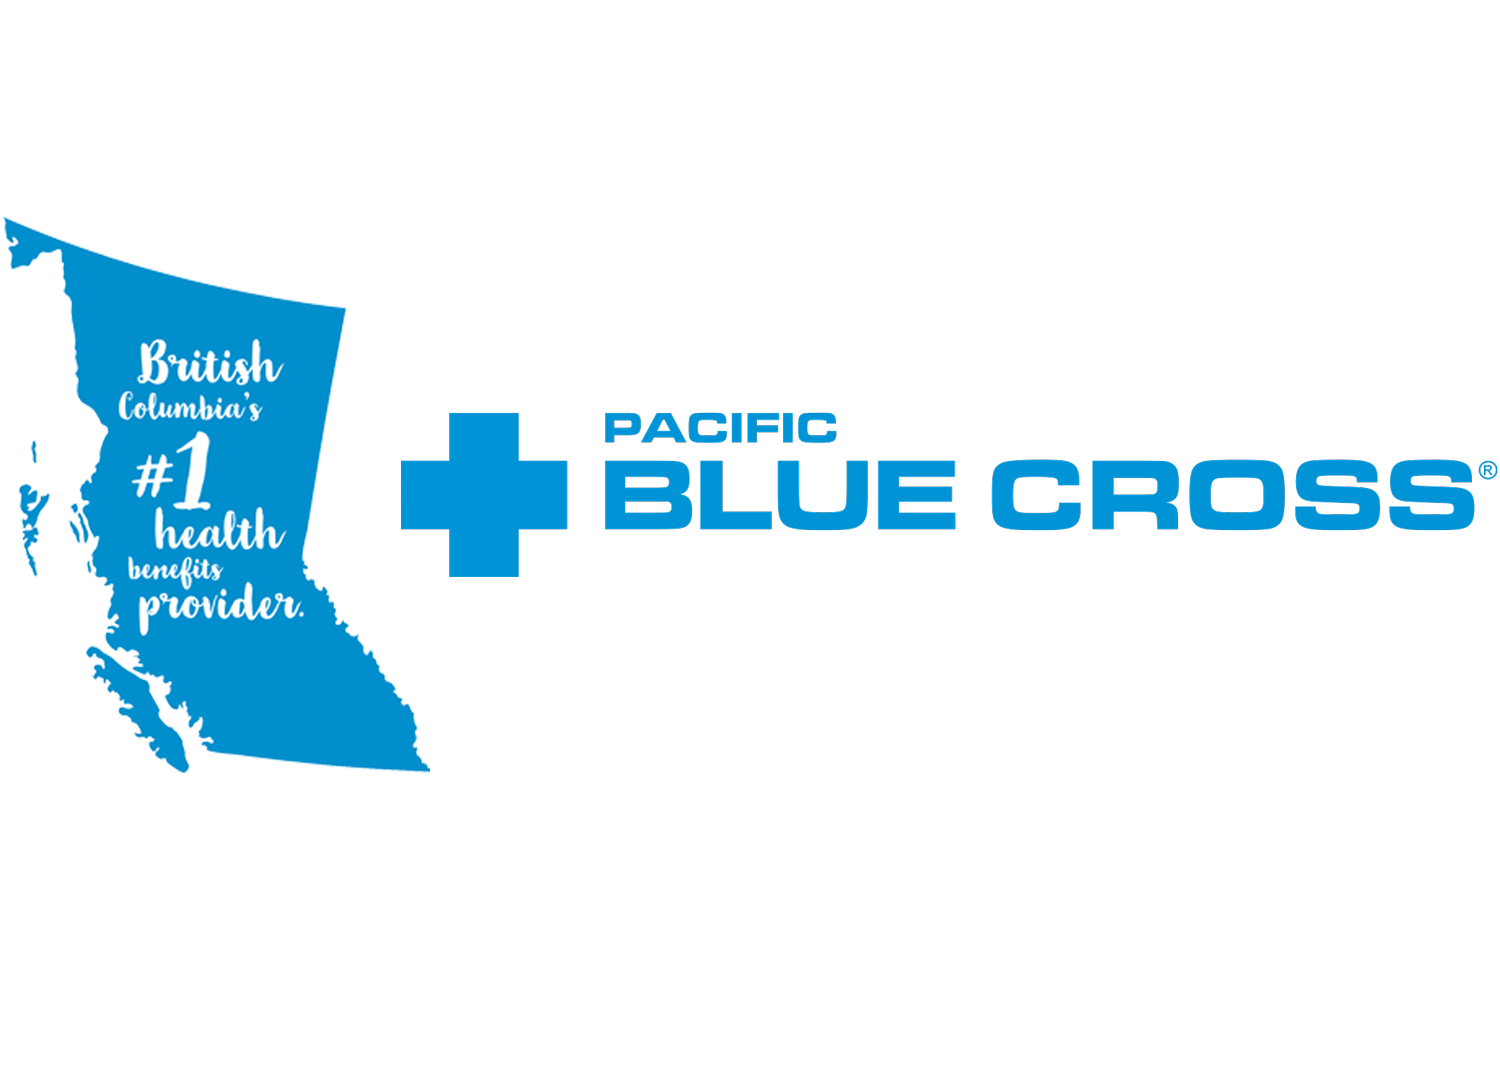 Pacific Blue Cross - BC's #1 provider of health, dental and